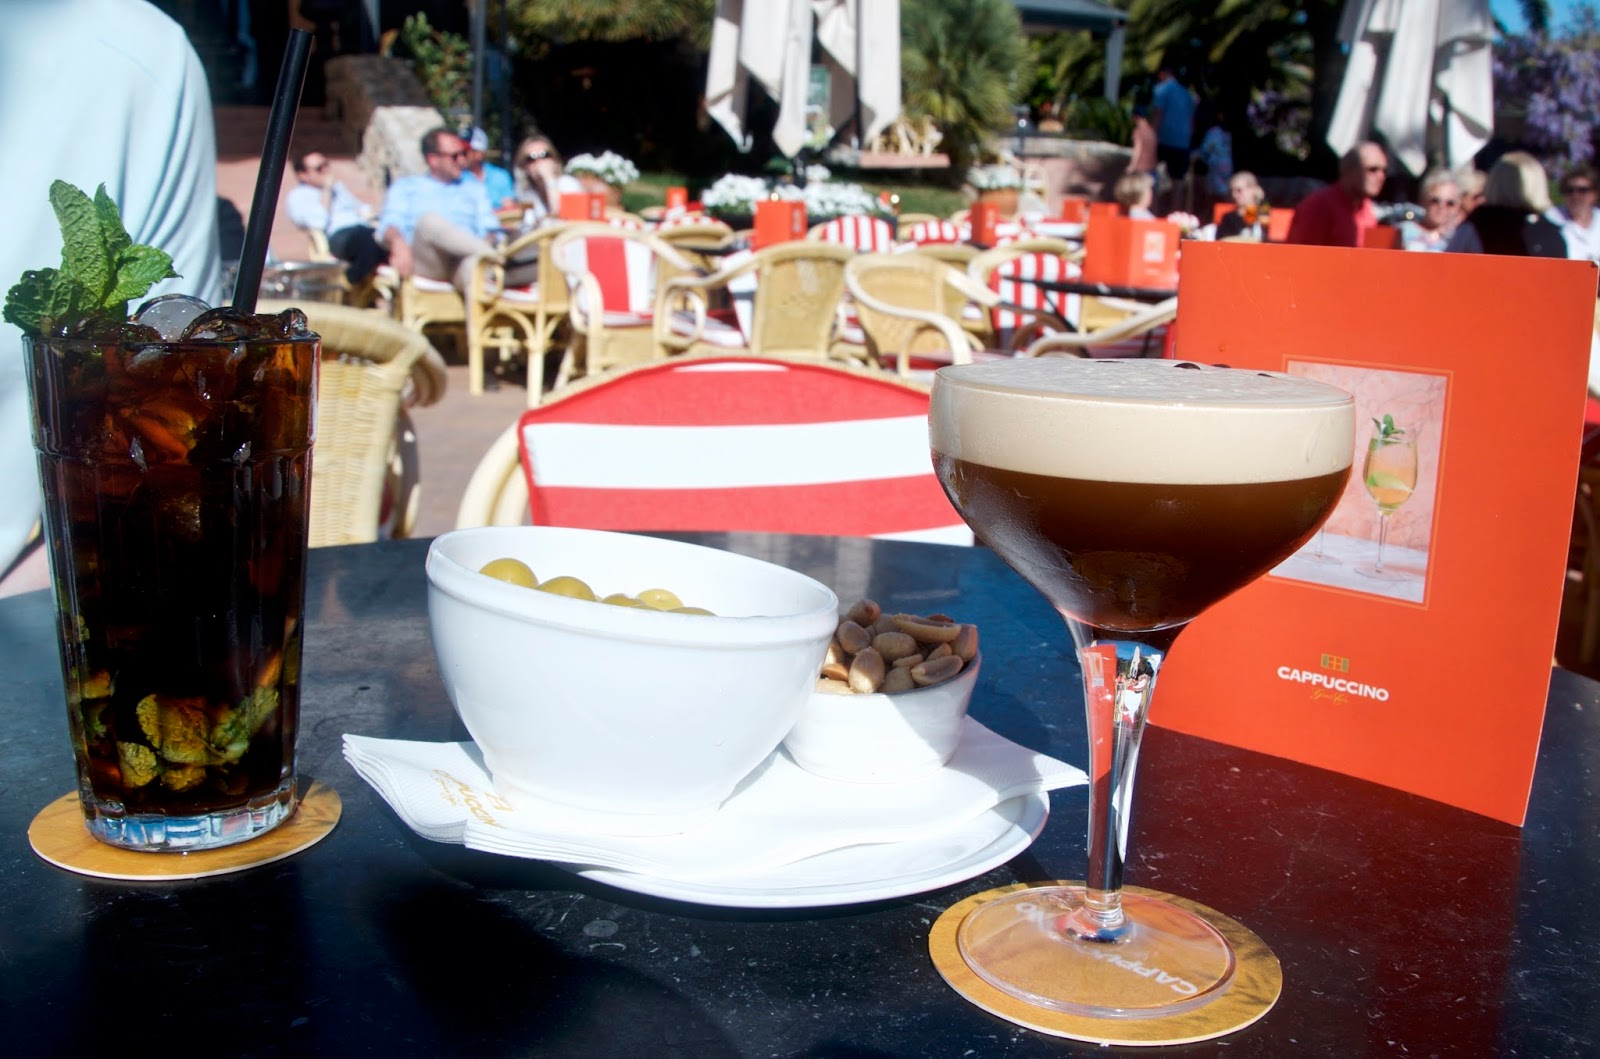 cocktails at Cappuccino in Puerto Portals